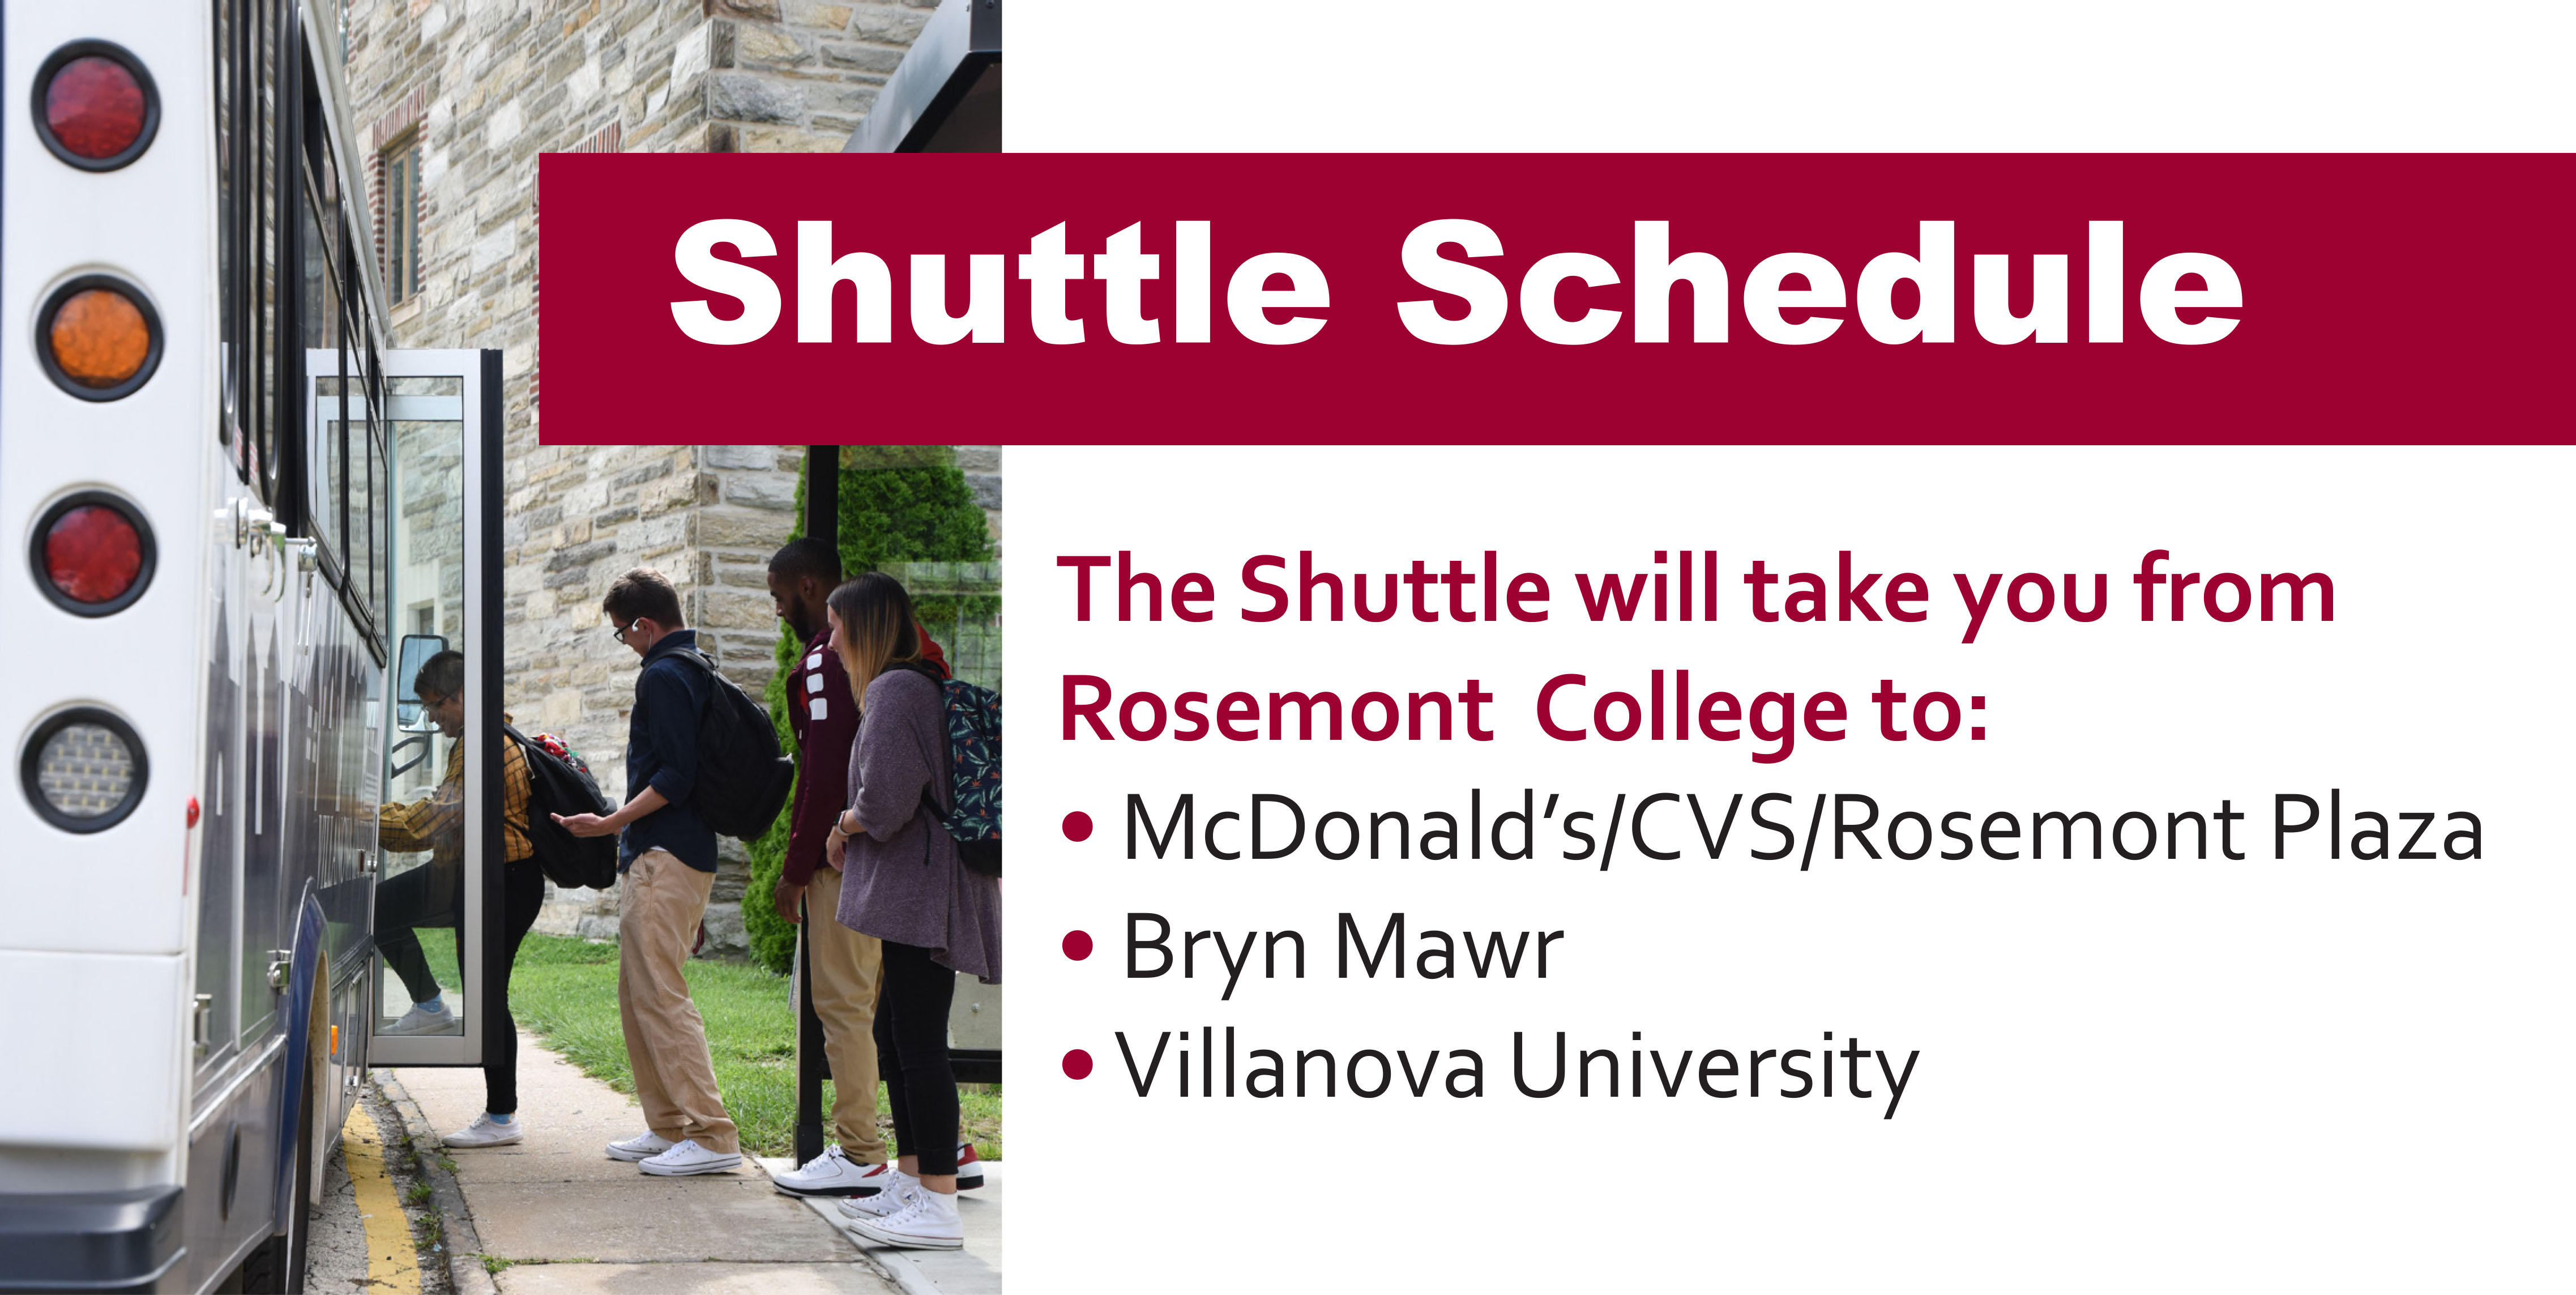 students getting onto a shuttle bus at Rosemont The Shuttle will take you from Rosemont College to: • McDonald's/CVS/Rosemont Plaza • Bryn Mawr • Villanova University